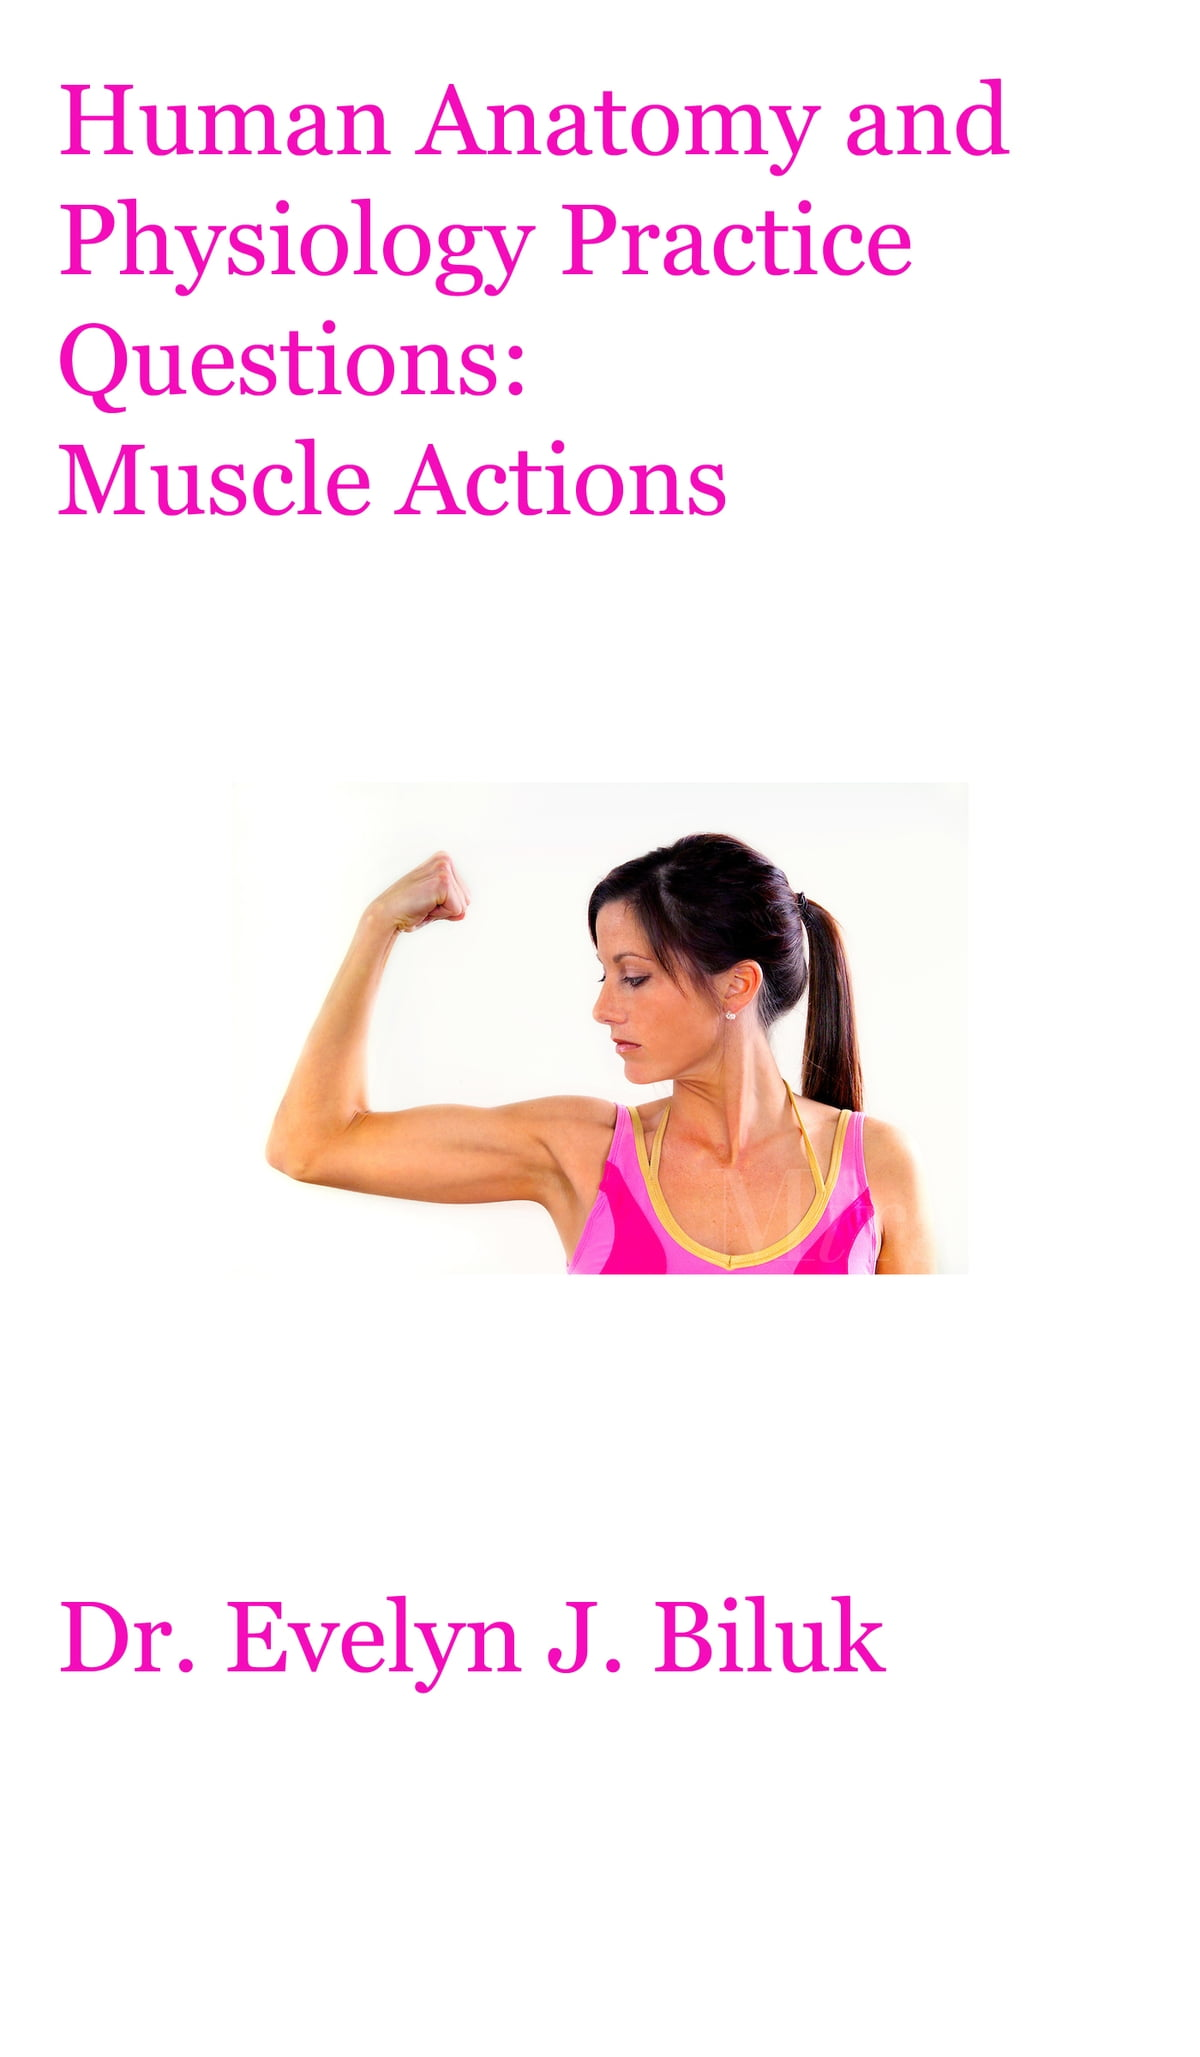 Human Anatomy And Physiology Practice Questions Muscle Actions